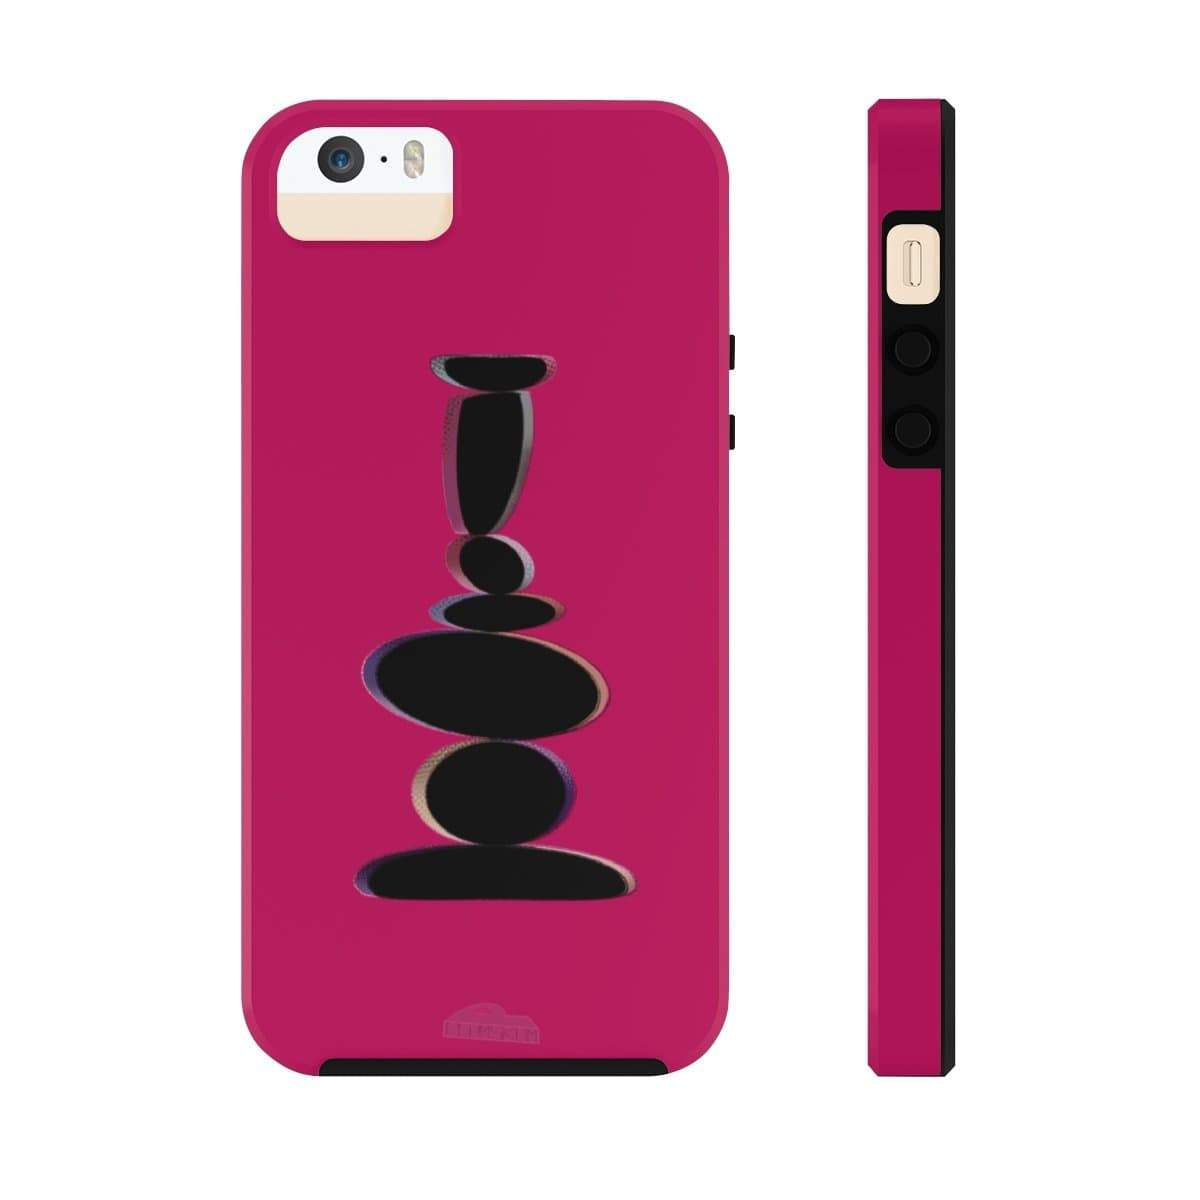 Plumskum Phone Case iPhone 5/5s/5se Tough Plumskum Zen Balance Artwork Phone Case